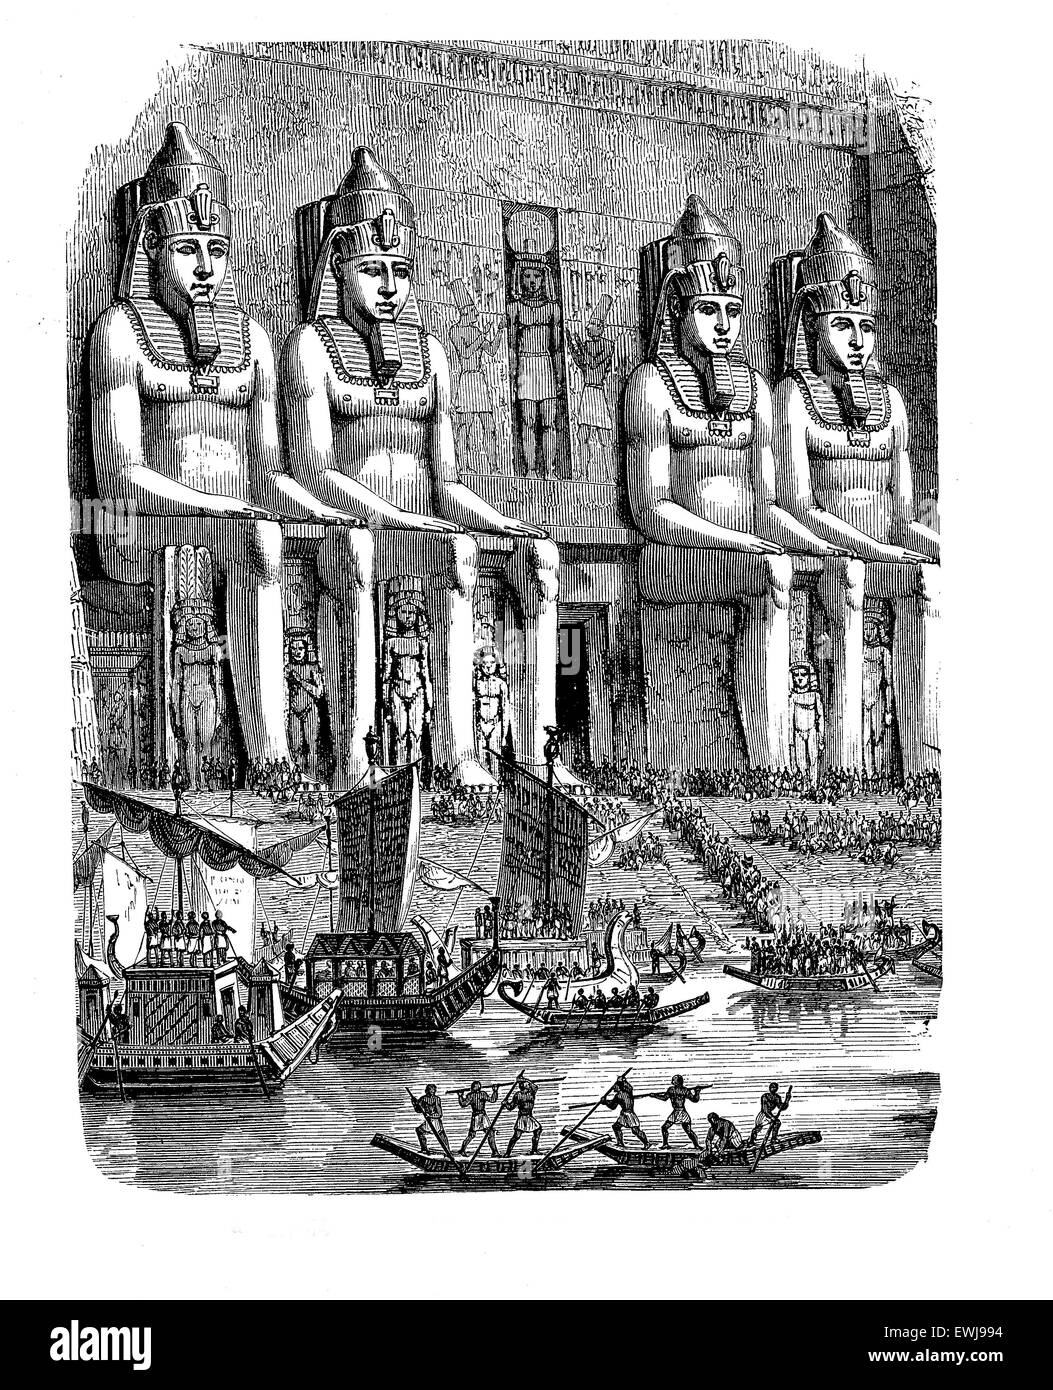 Antique Aegypt - Abu Simbel, vivid depiction of the life at this age, engraving - Stock Image